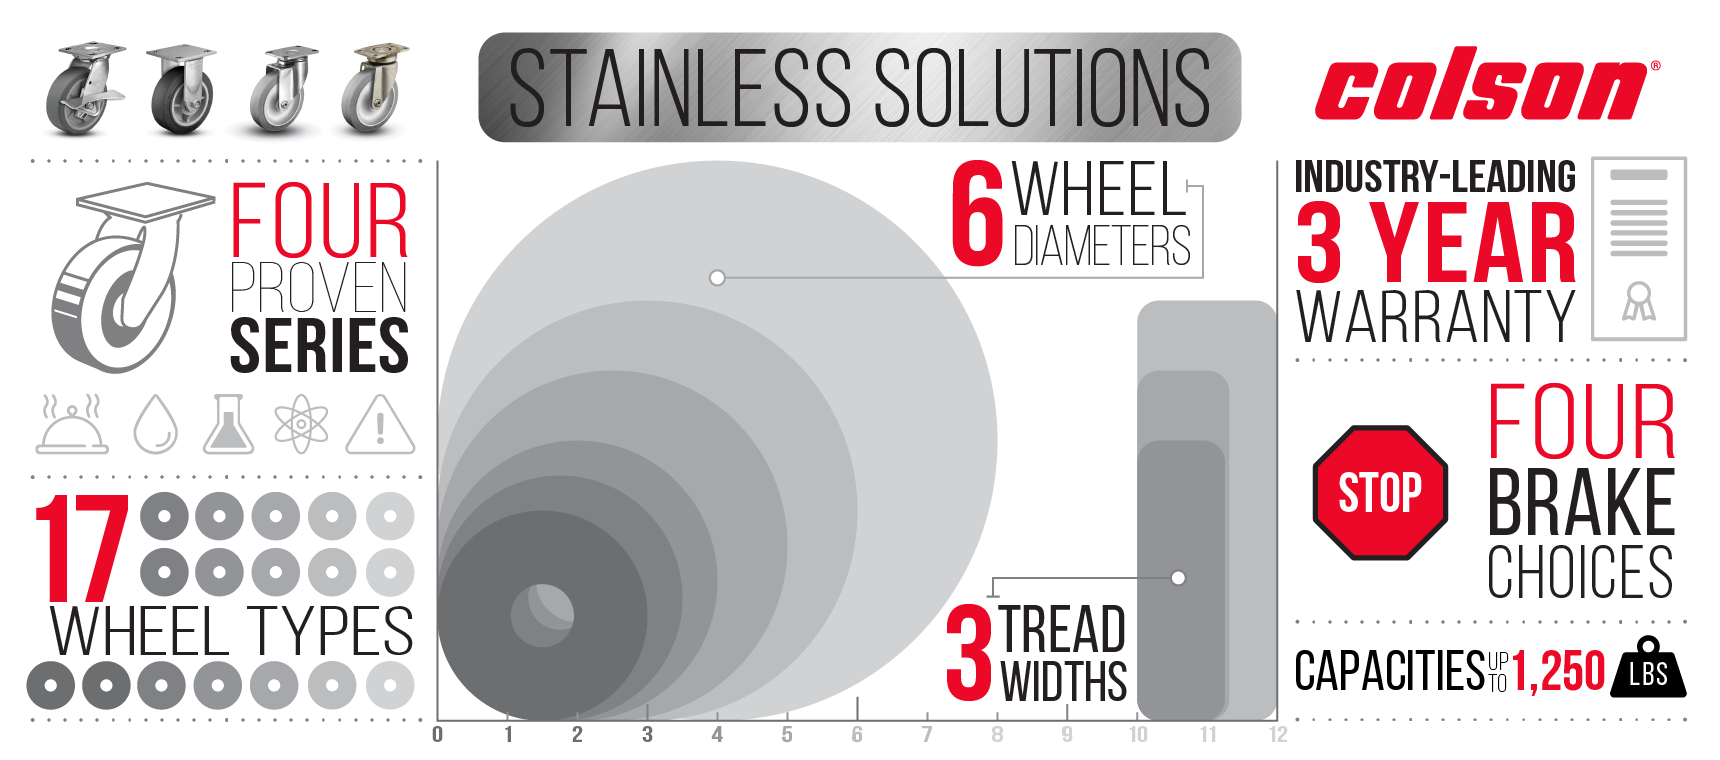 Colson Stainless Solutions Infographic